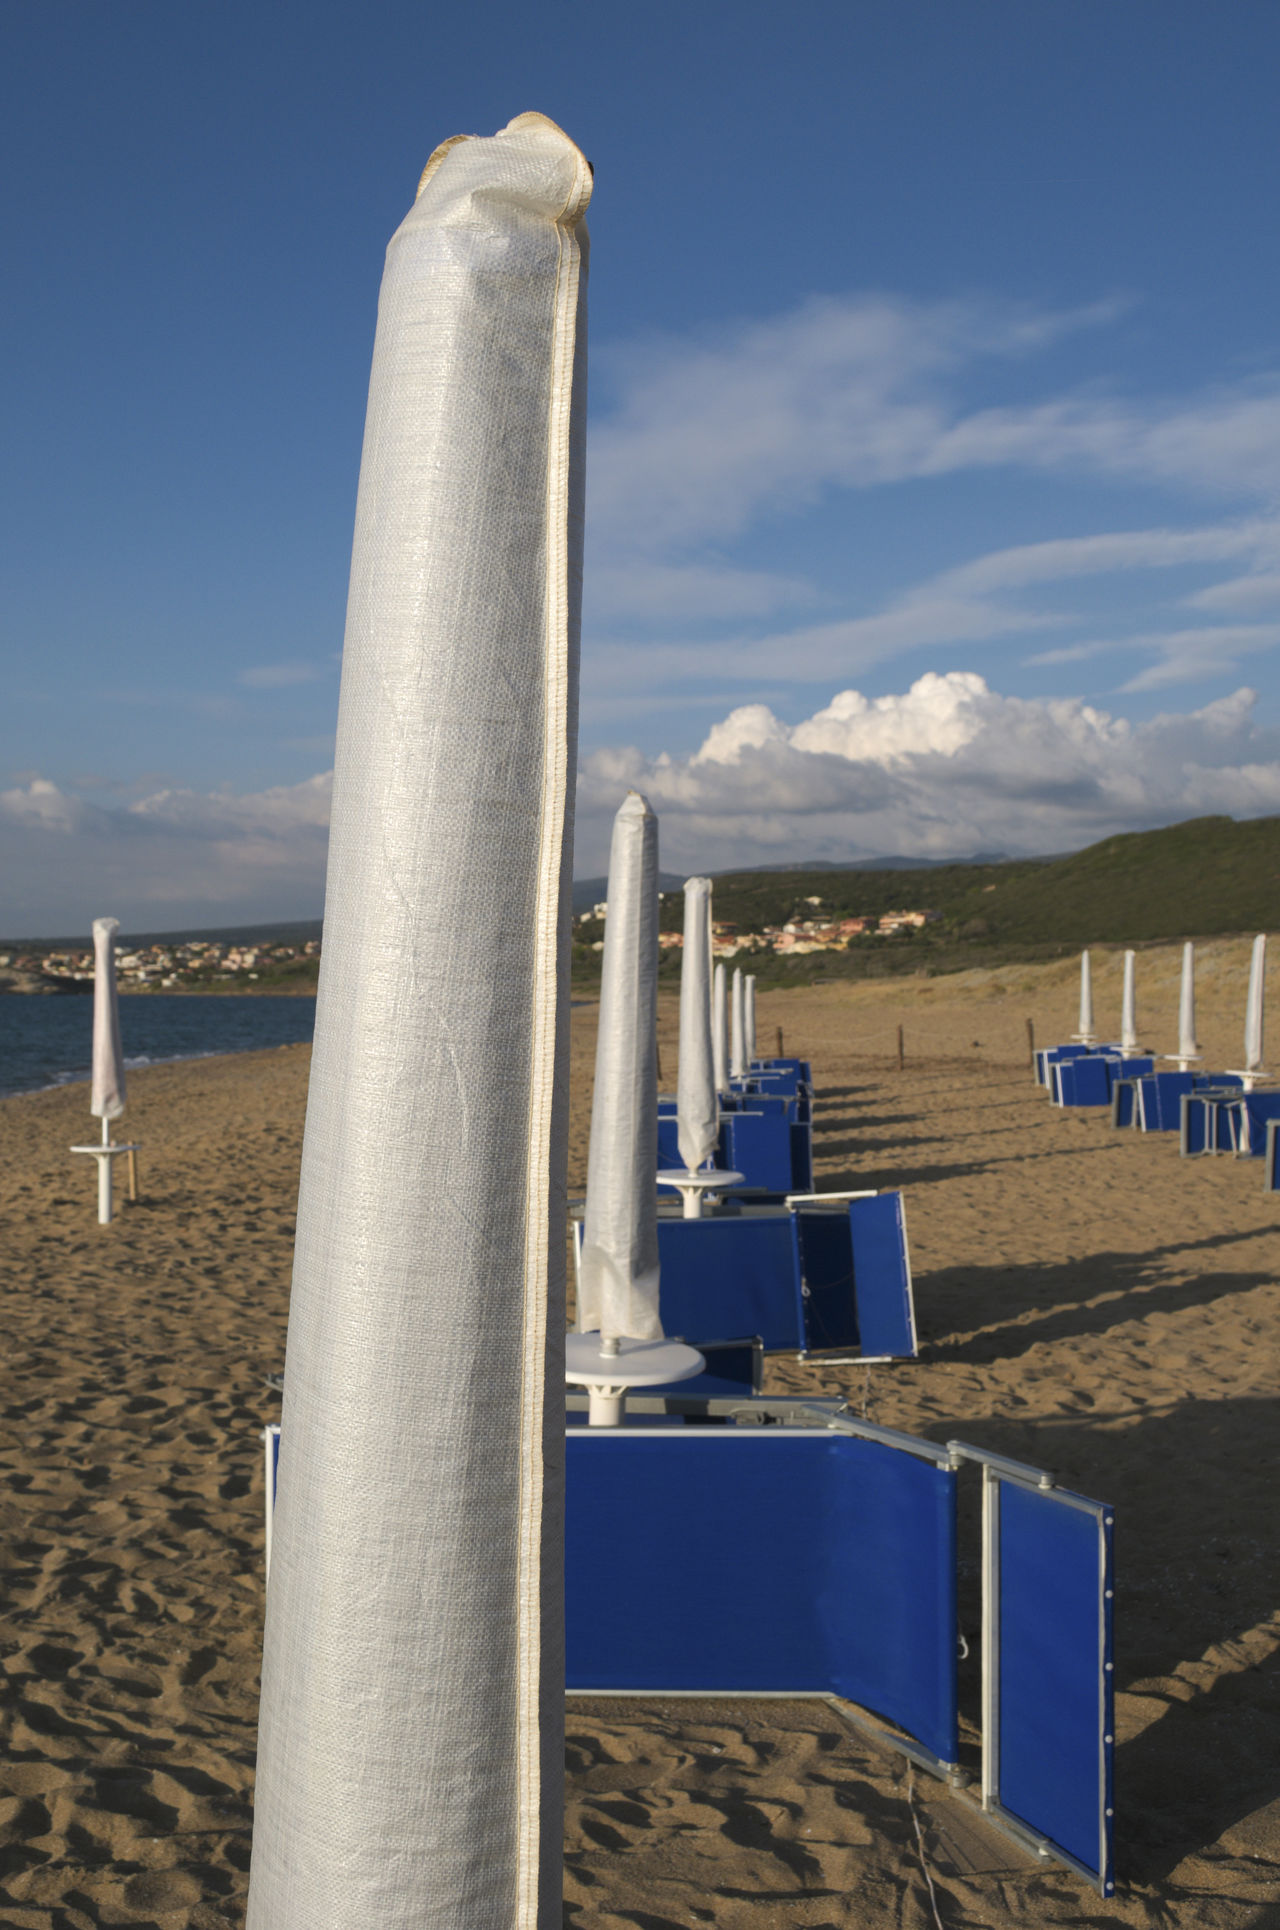 end of season in Is Arenas, Sardinia, Italy Absence Beach Closed Day Deckchairs Deserted End Of Summer Europe Italy Mediterranean  No People Off Season Outdoors Parasol Resort Sardinia Seaside Seasonal Sky Sunbeds Sunlounger Sunshade Sunshades Umbrellas